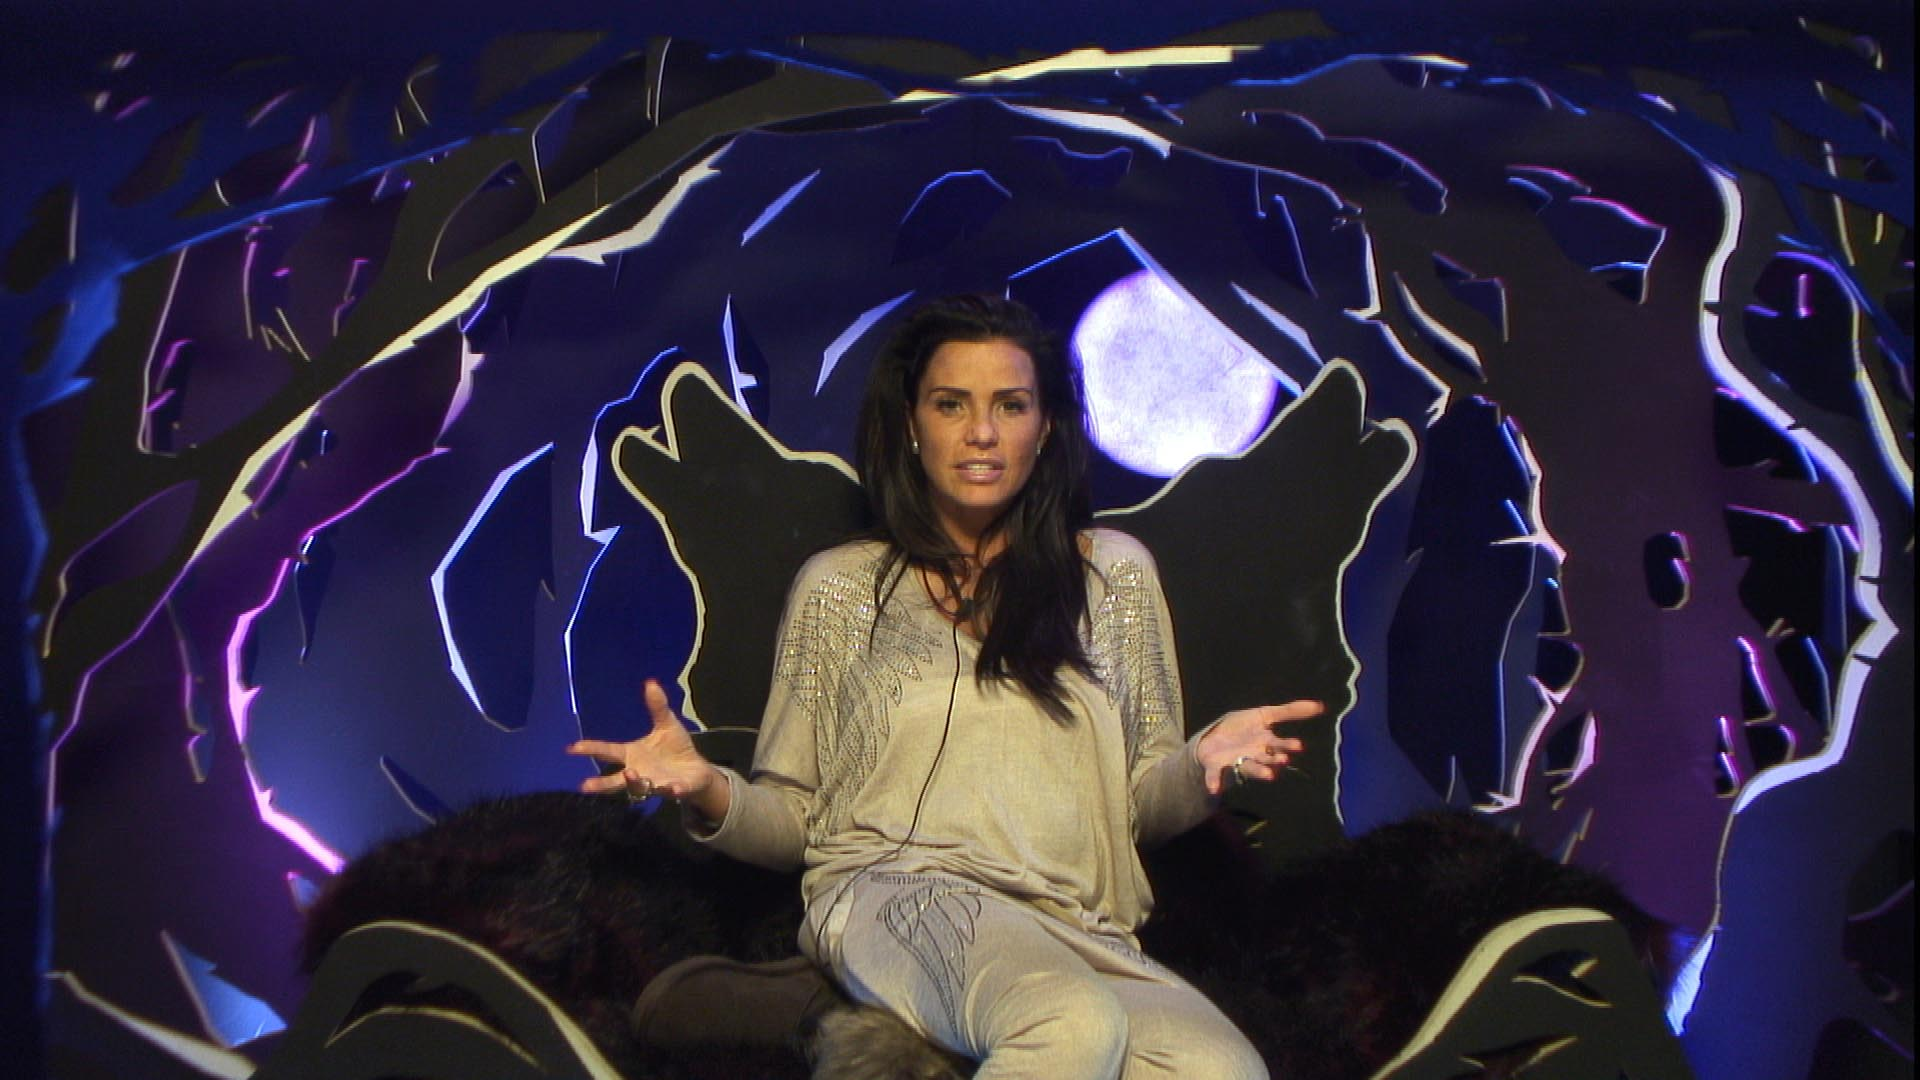 Katie Price 'begs Dancing On Ice producers for role on next year's show'